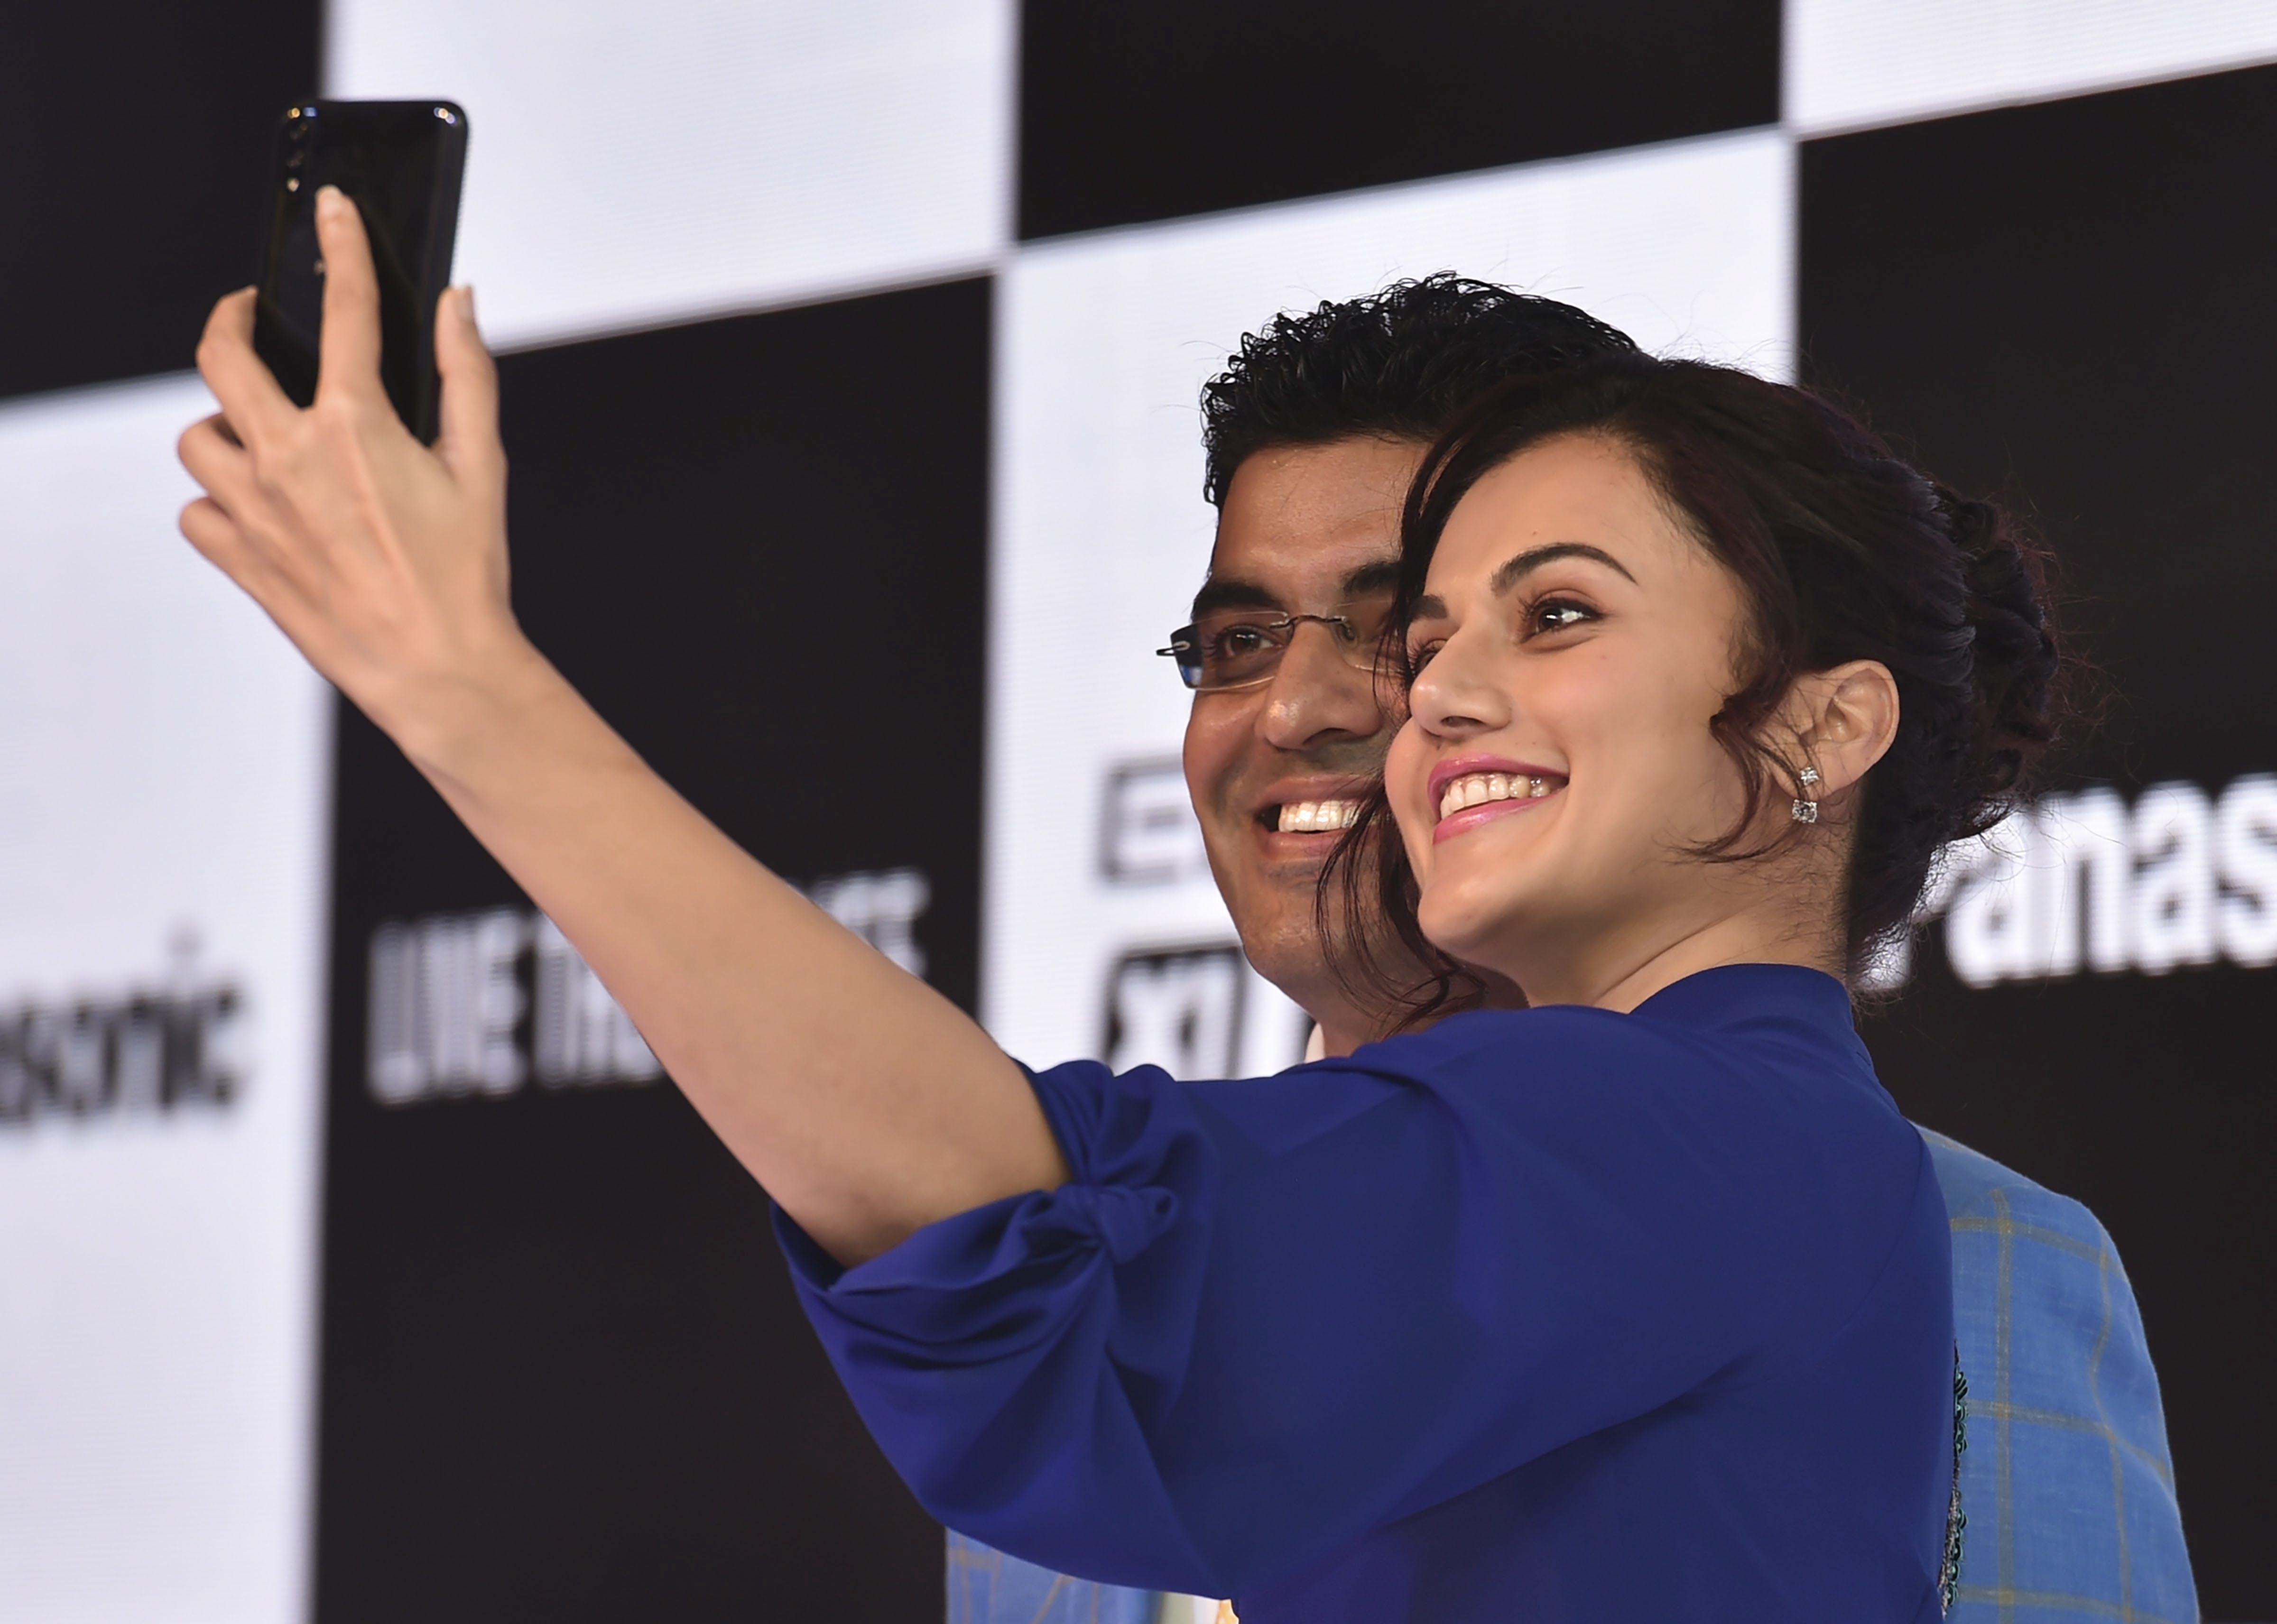 Brand Ambassador and Bollywood actor Taapsee Pannu takes a selfie with Panasonic India Mobility Division Business Head Pankaj Rana during the launch of Panasonic's smartphones Eluga X1 and X1 pro at a press conference, in New Delhi - PTI